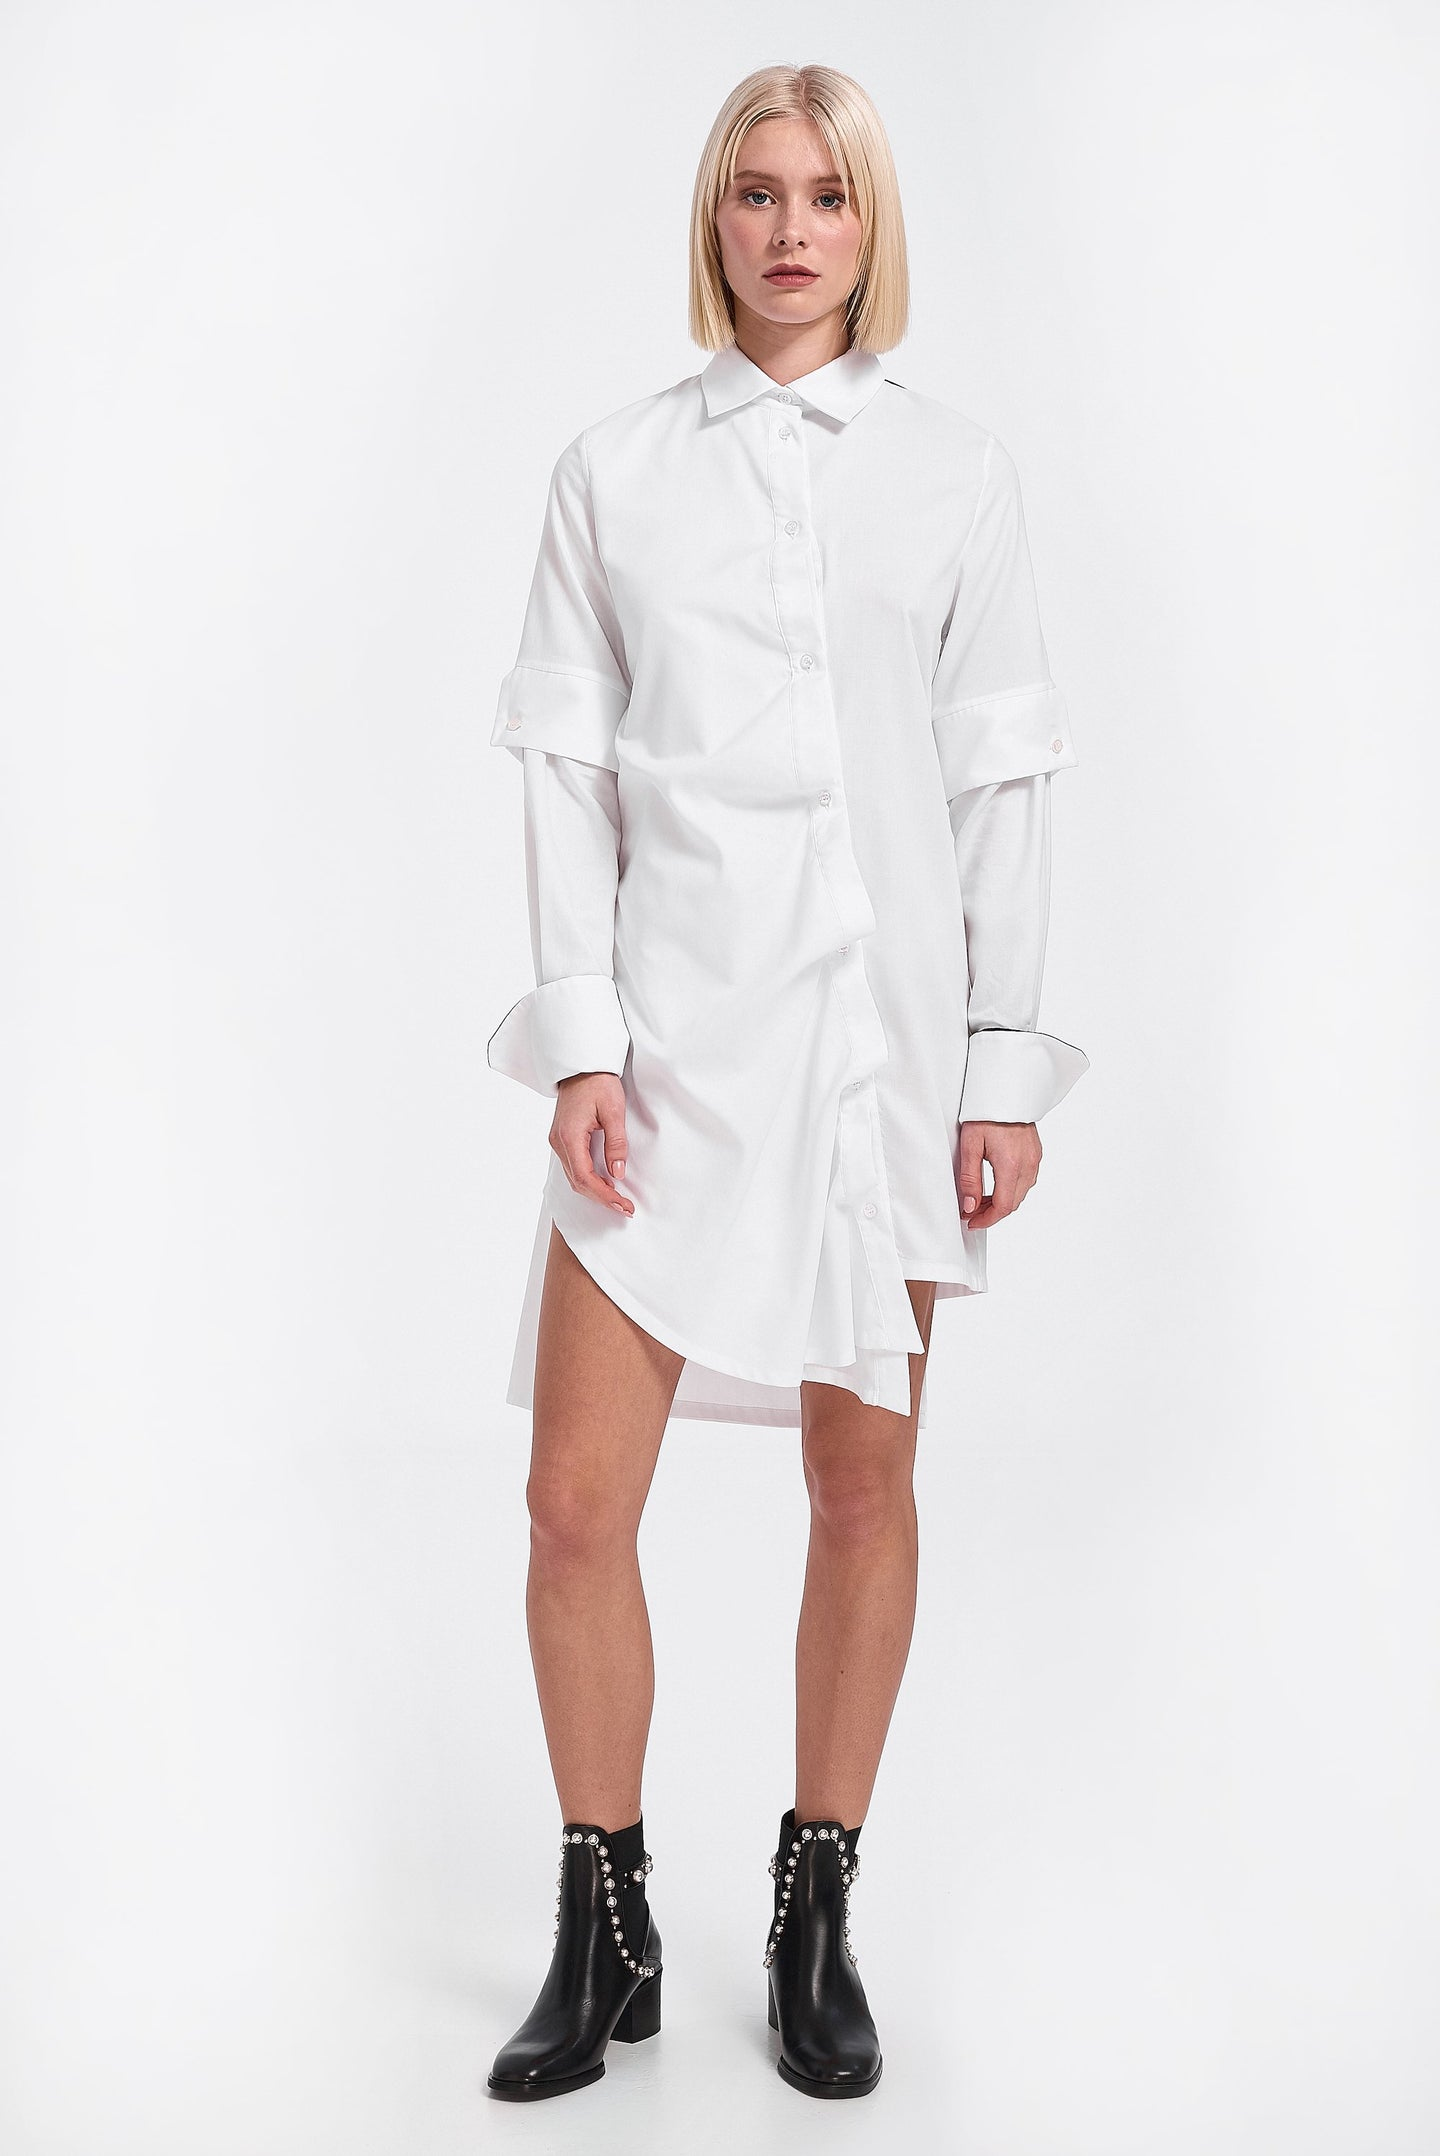 Dress shirt, asymmetric white